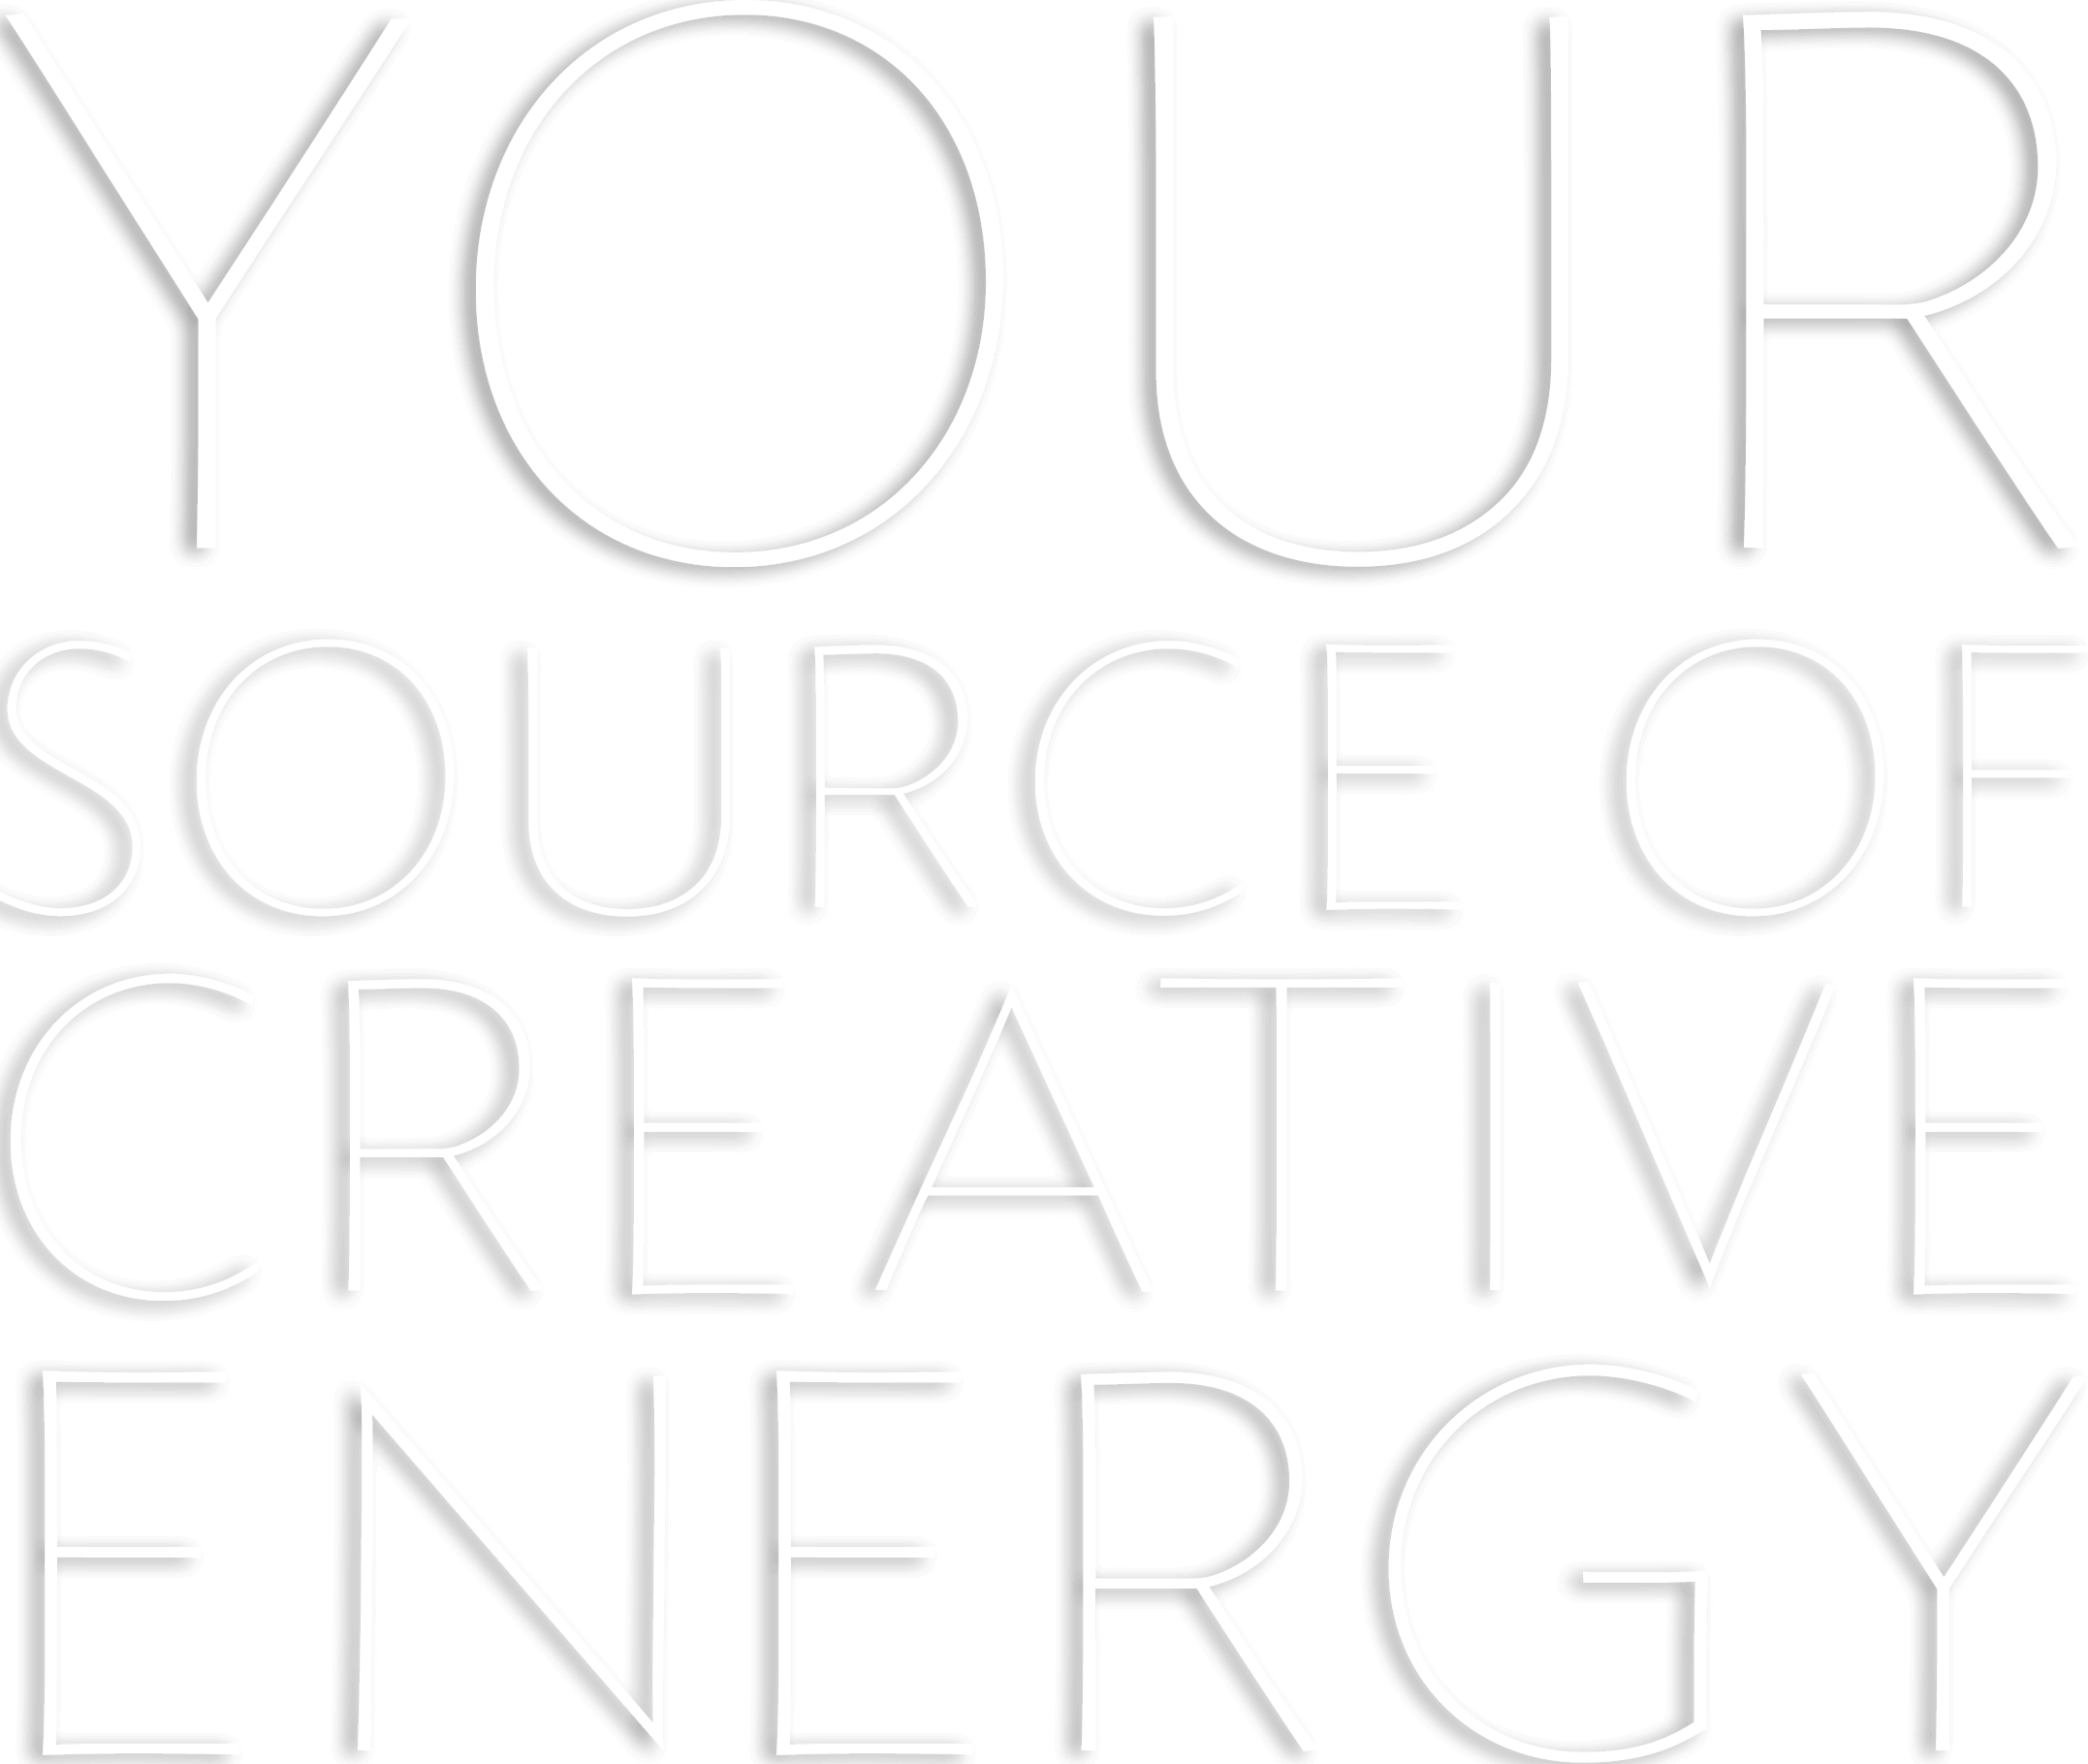 is Your source of creative energy